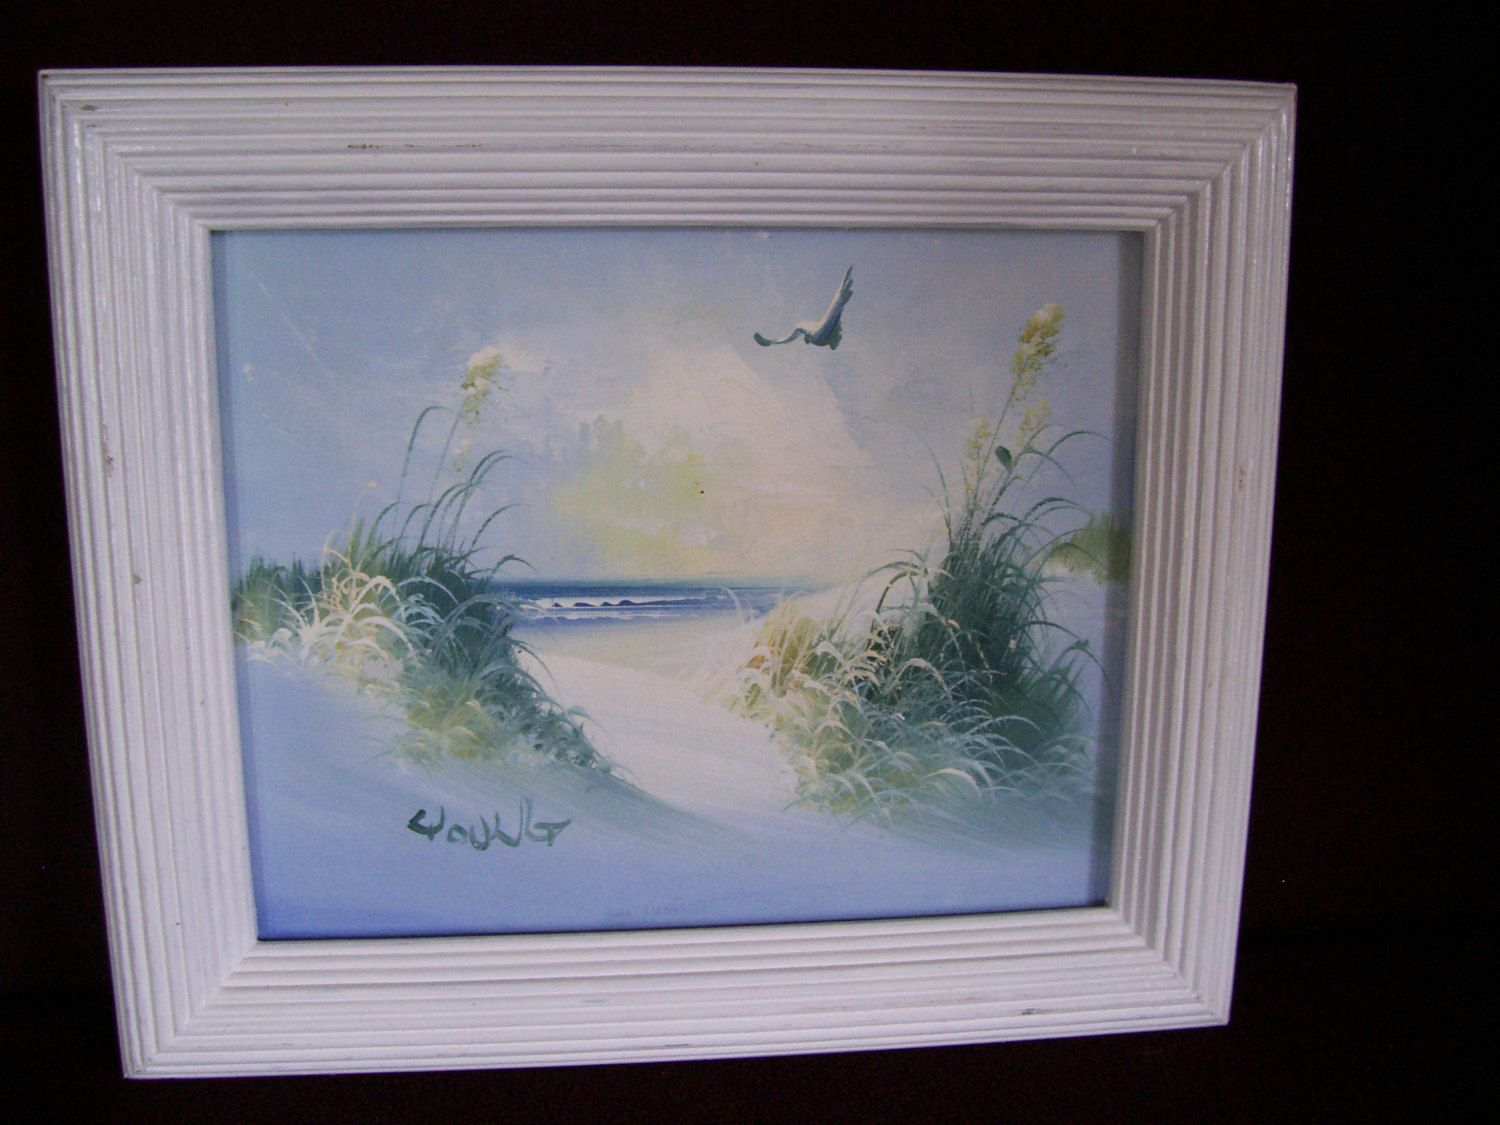 Vintage signed Oil Painting  REED and a Bird  13 x 10.5 framed by LIZ404 on Etsy